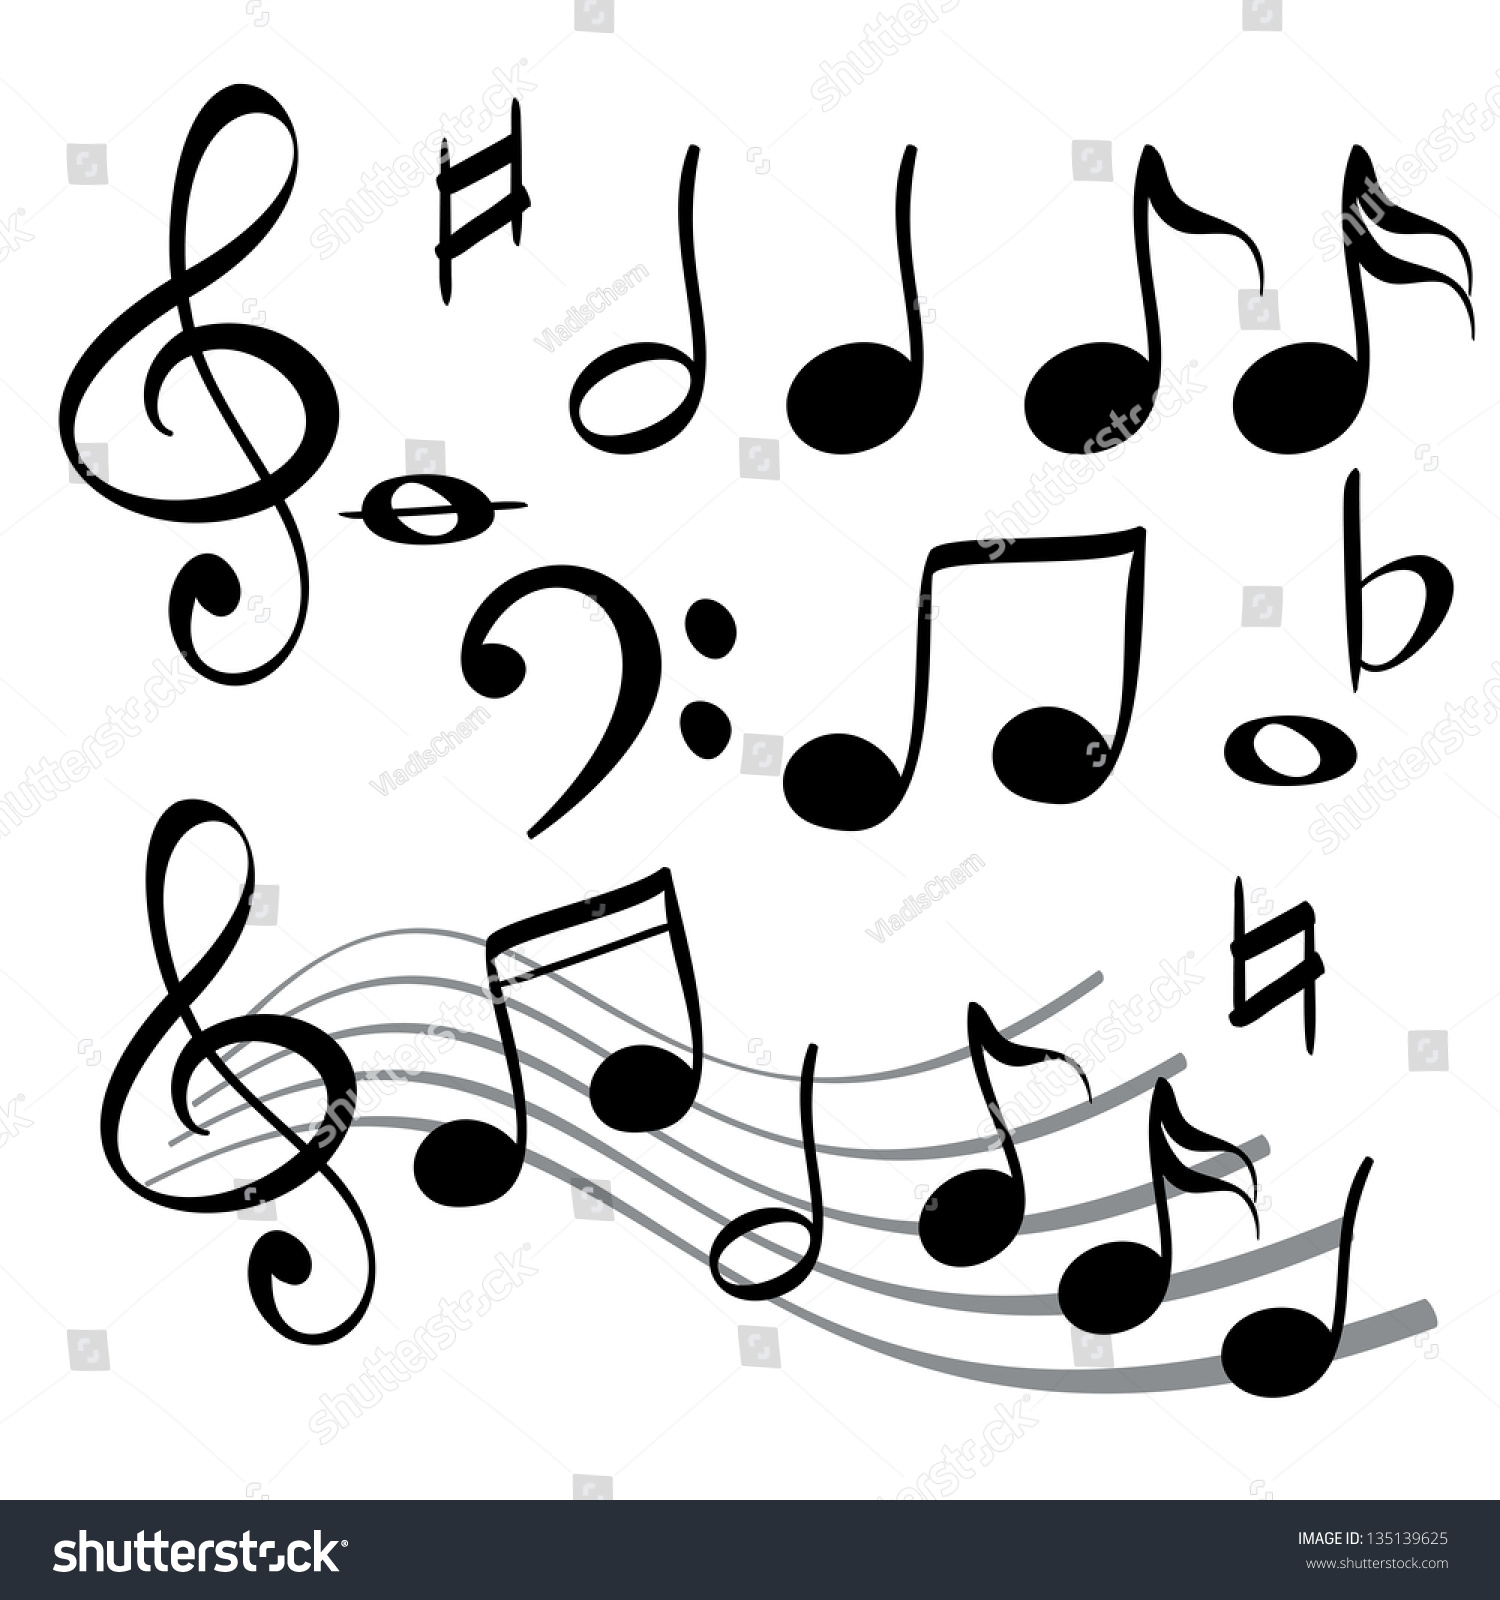 music cartoon note vector icon illustration vectors shutterstock footage illustrations